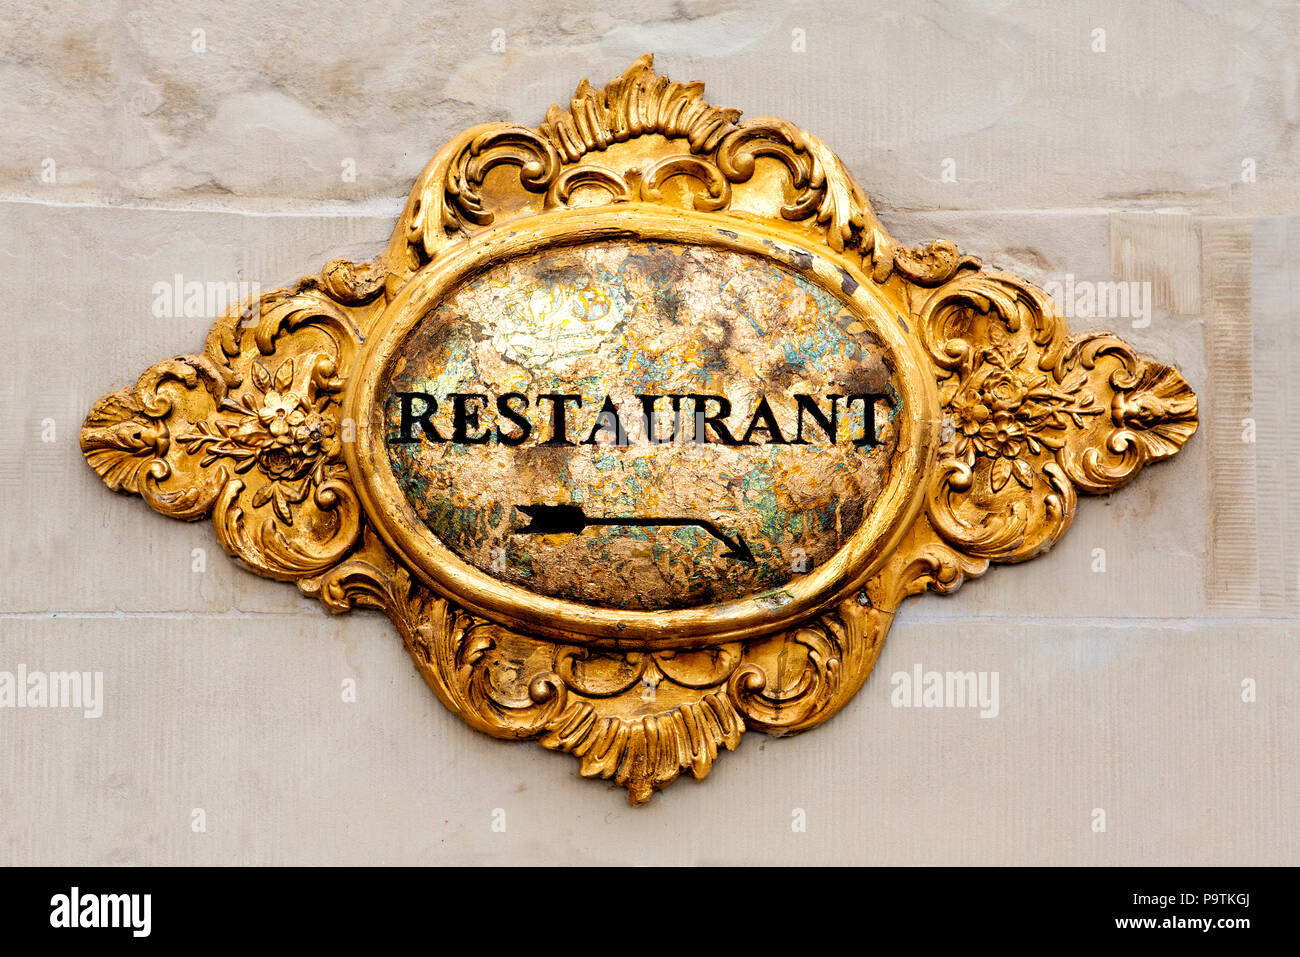 Old Restaurant, Germany - Stock Image